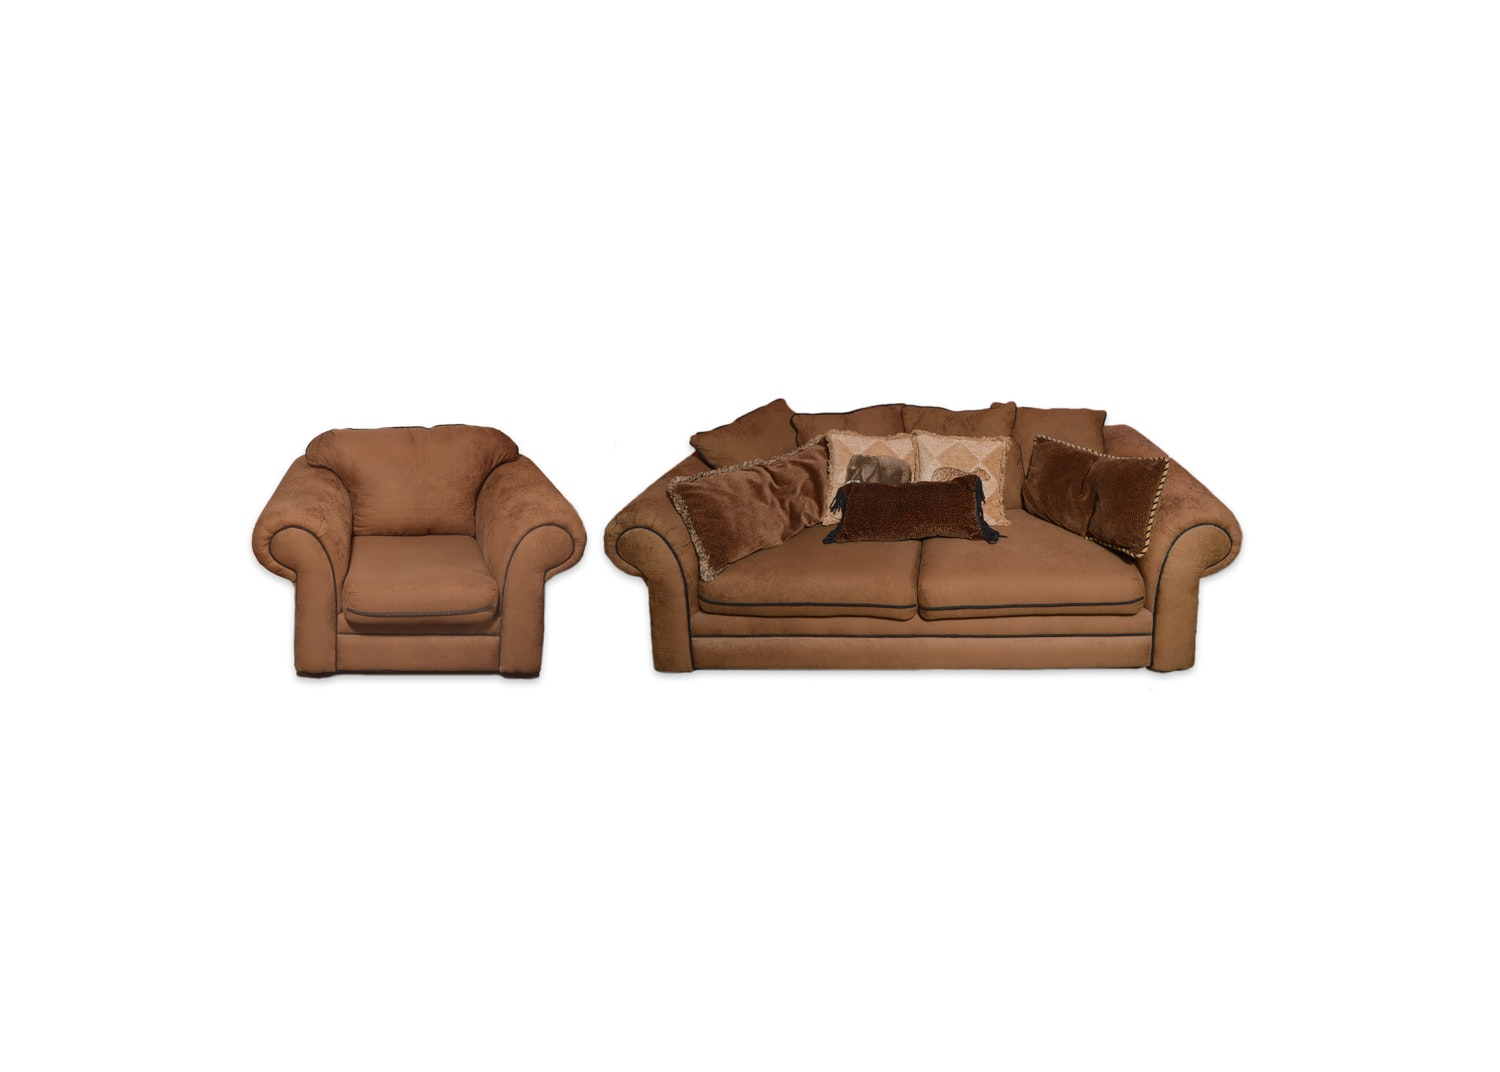 Brown Upholstered Sofa and Armchair